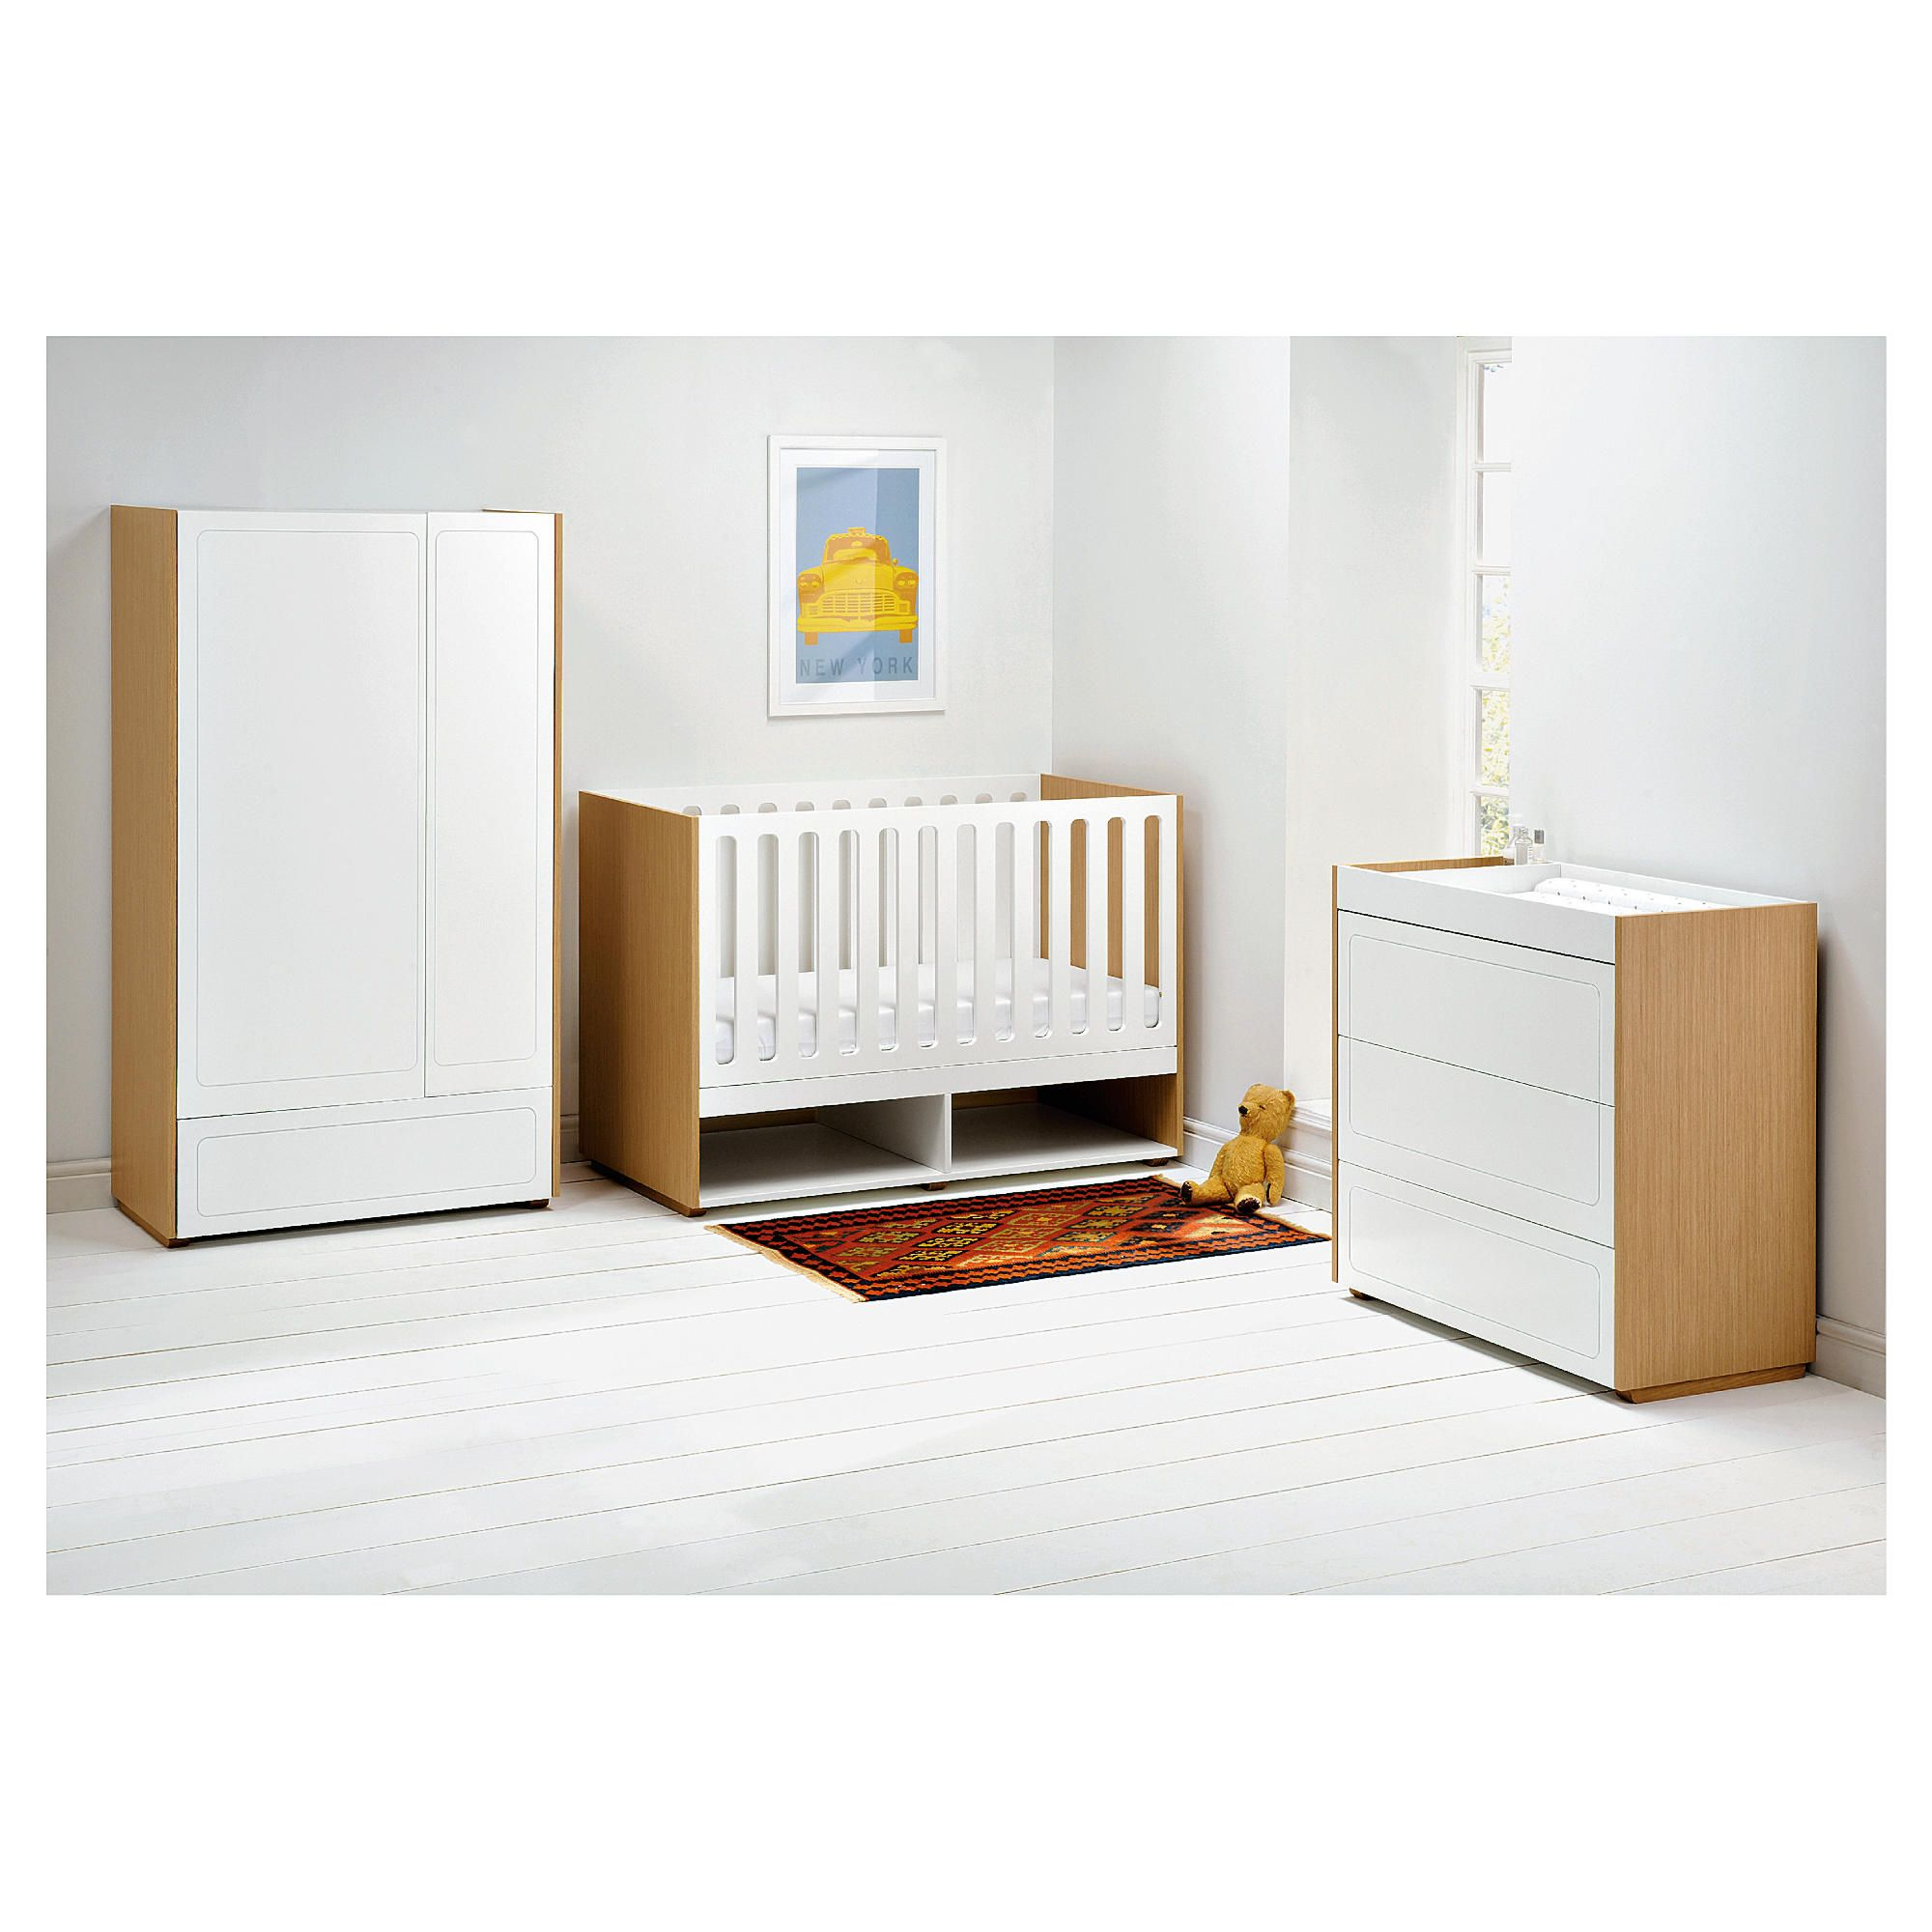 East Coast Monza 3 Piece Nursery Roomset at Tesco Direct